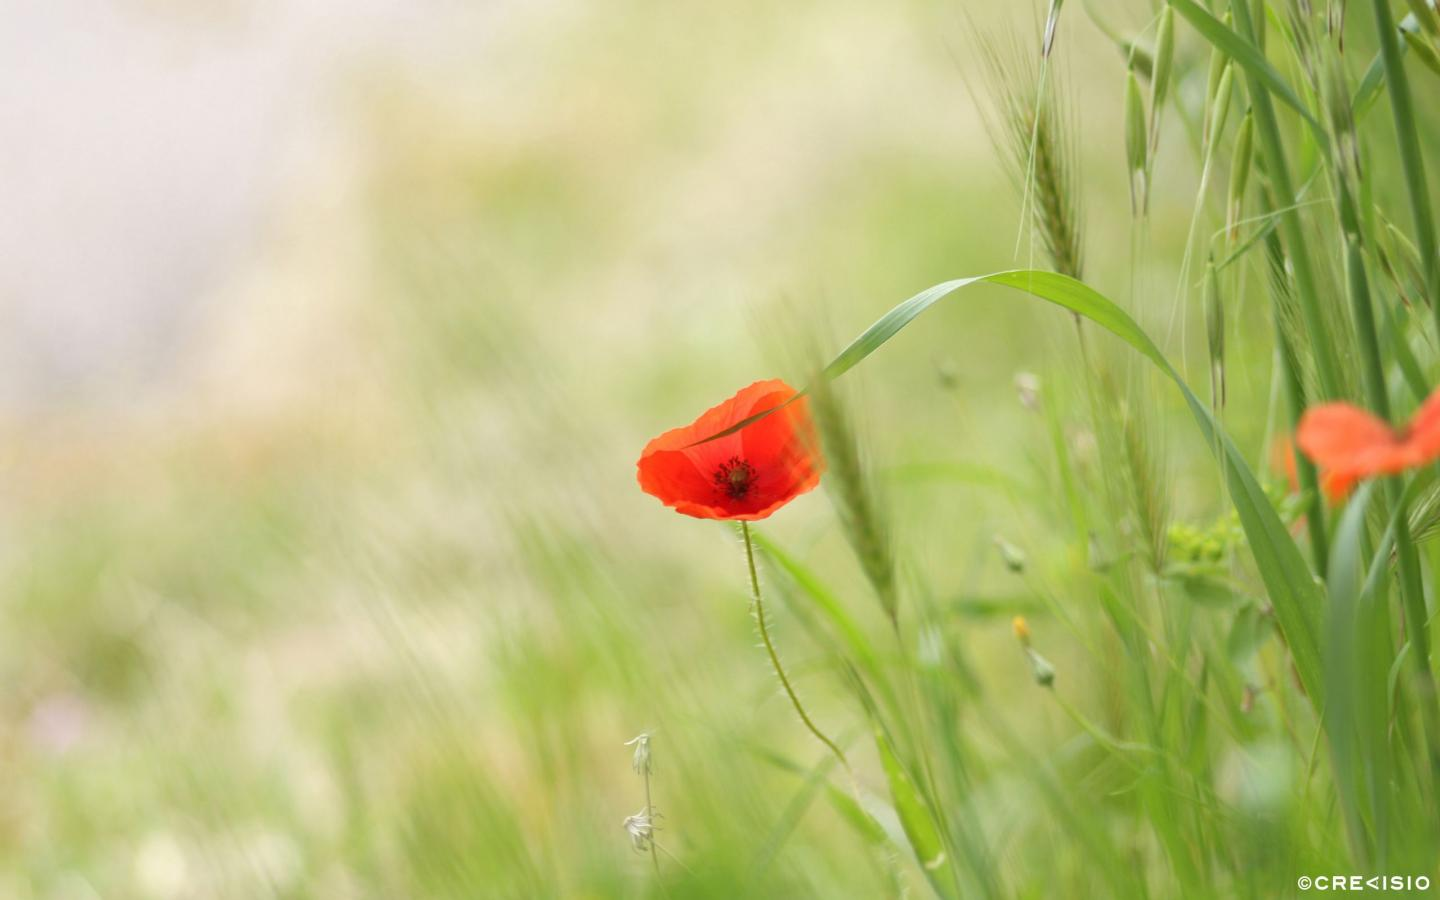 Lonely Poppy by Crevisio